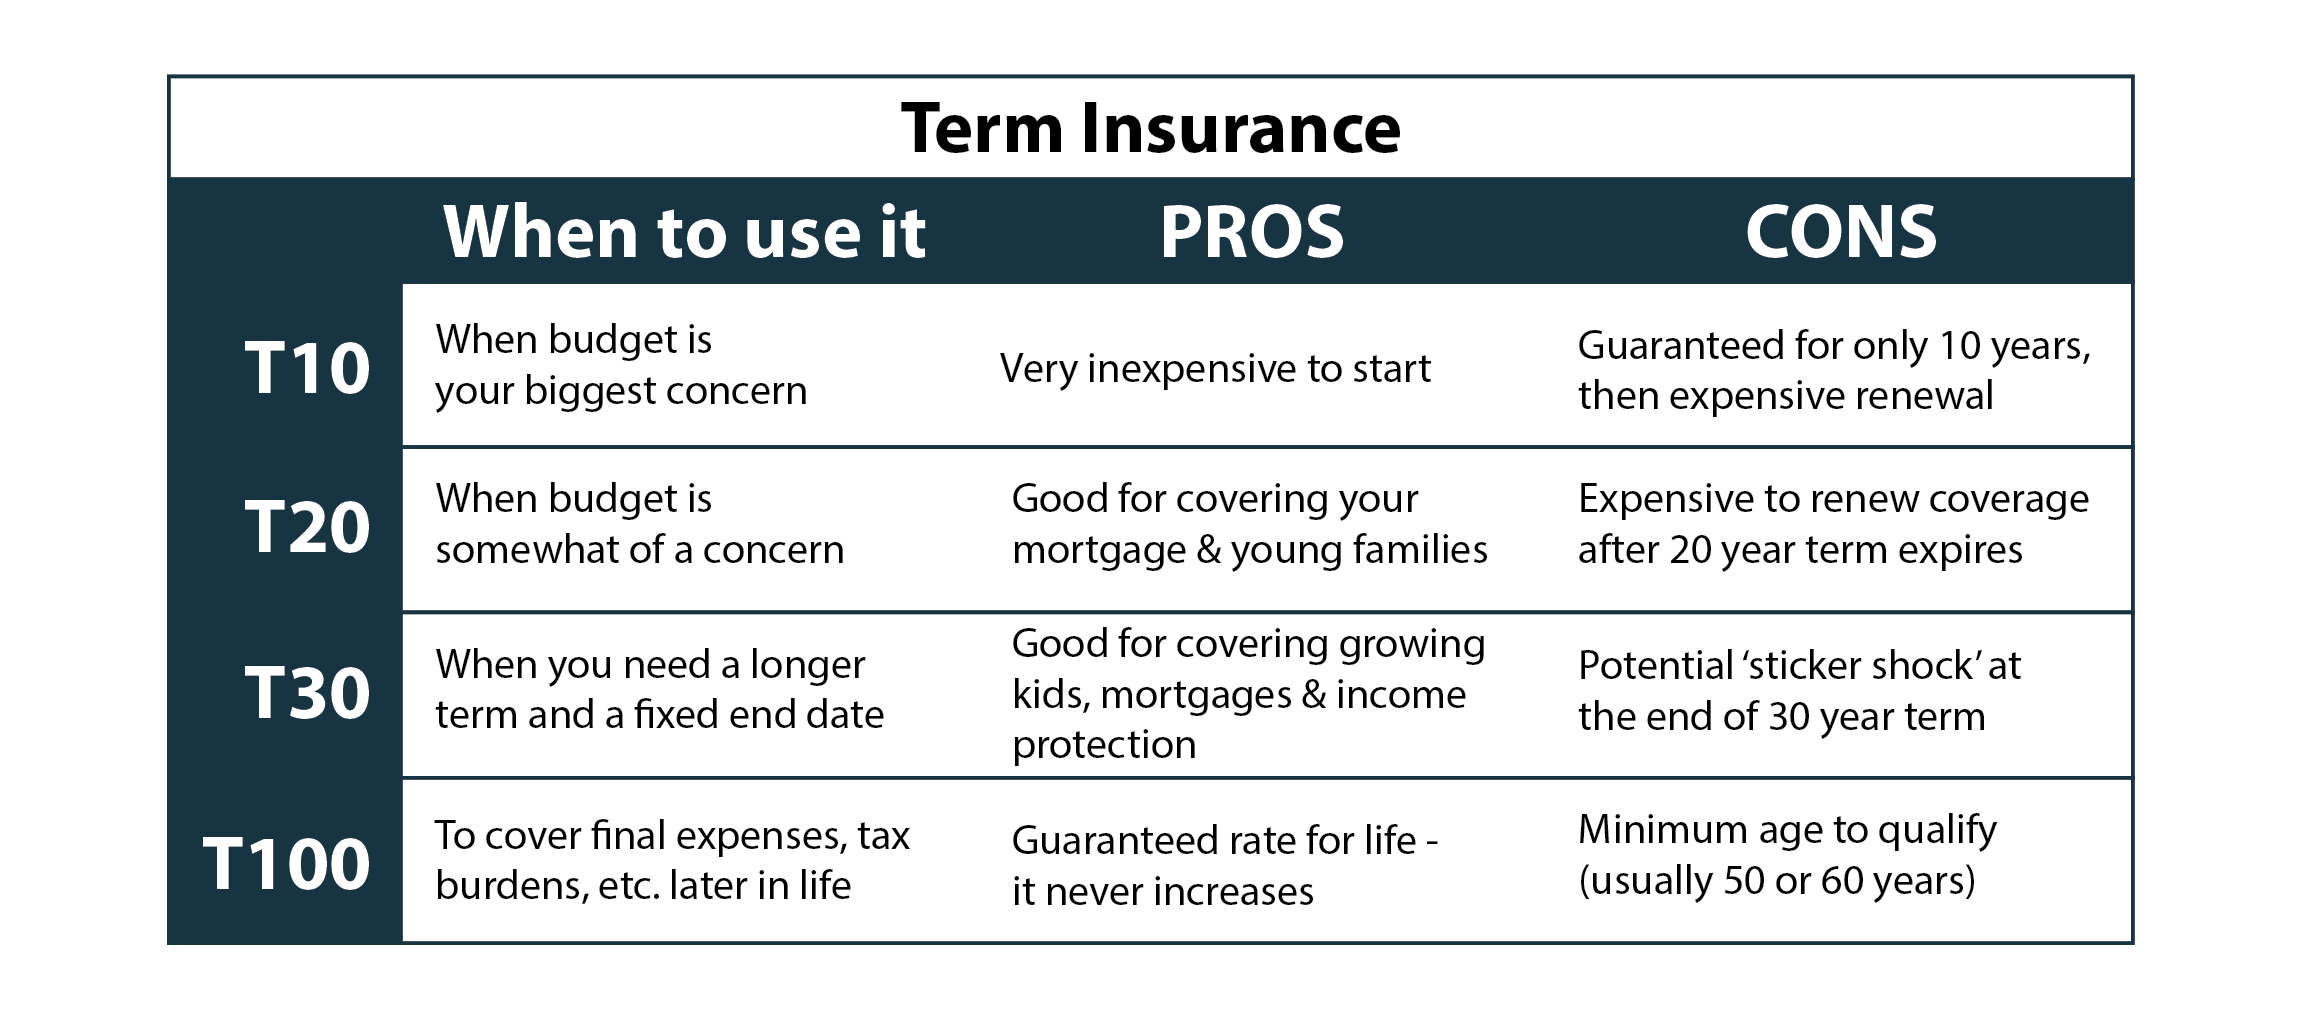 Term insurance pros cons